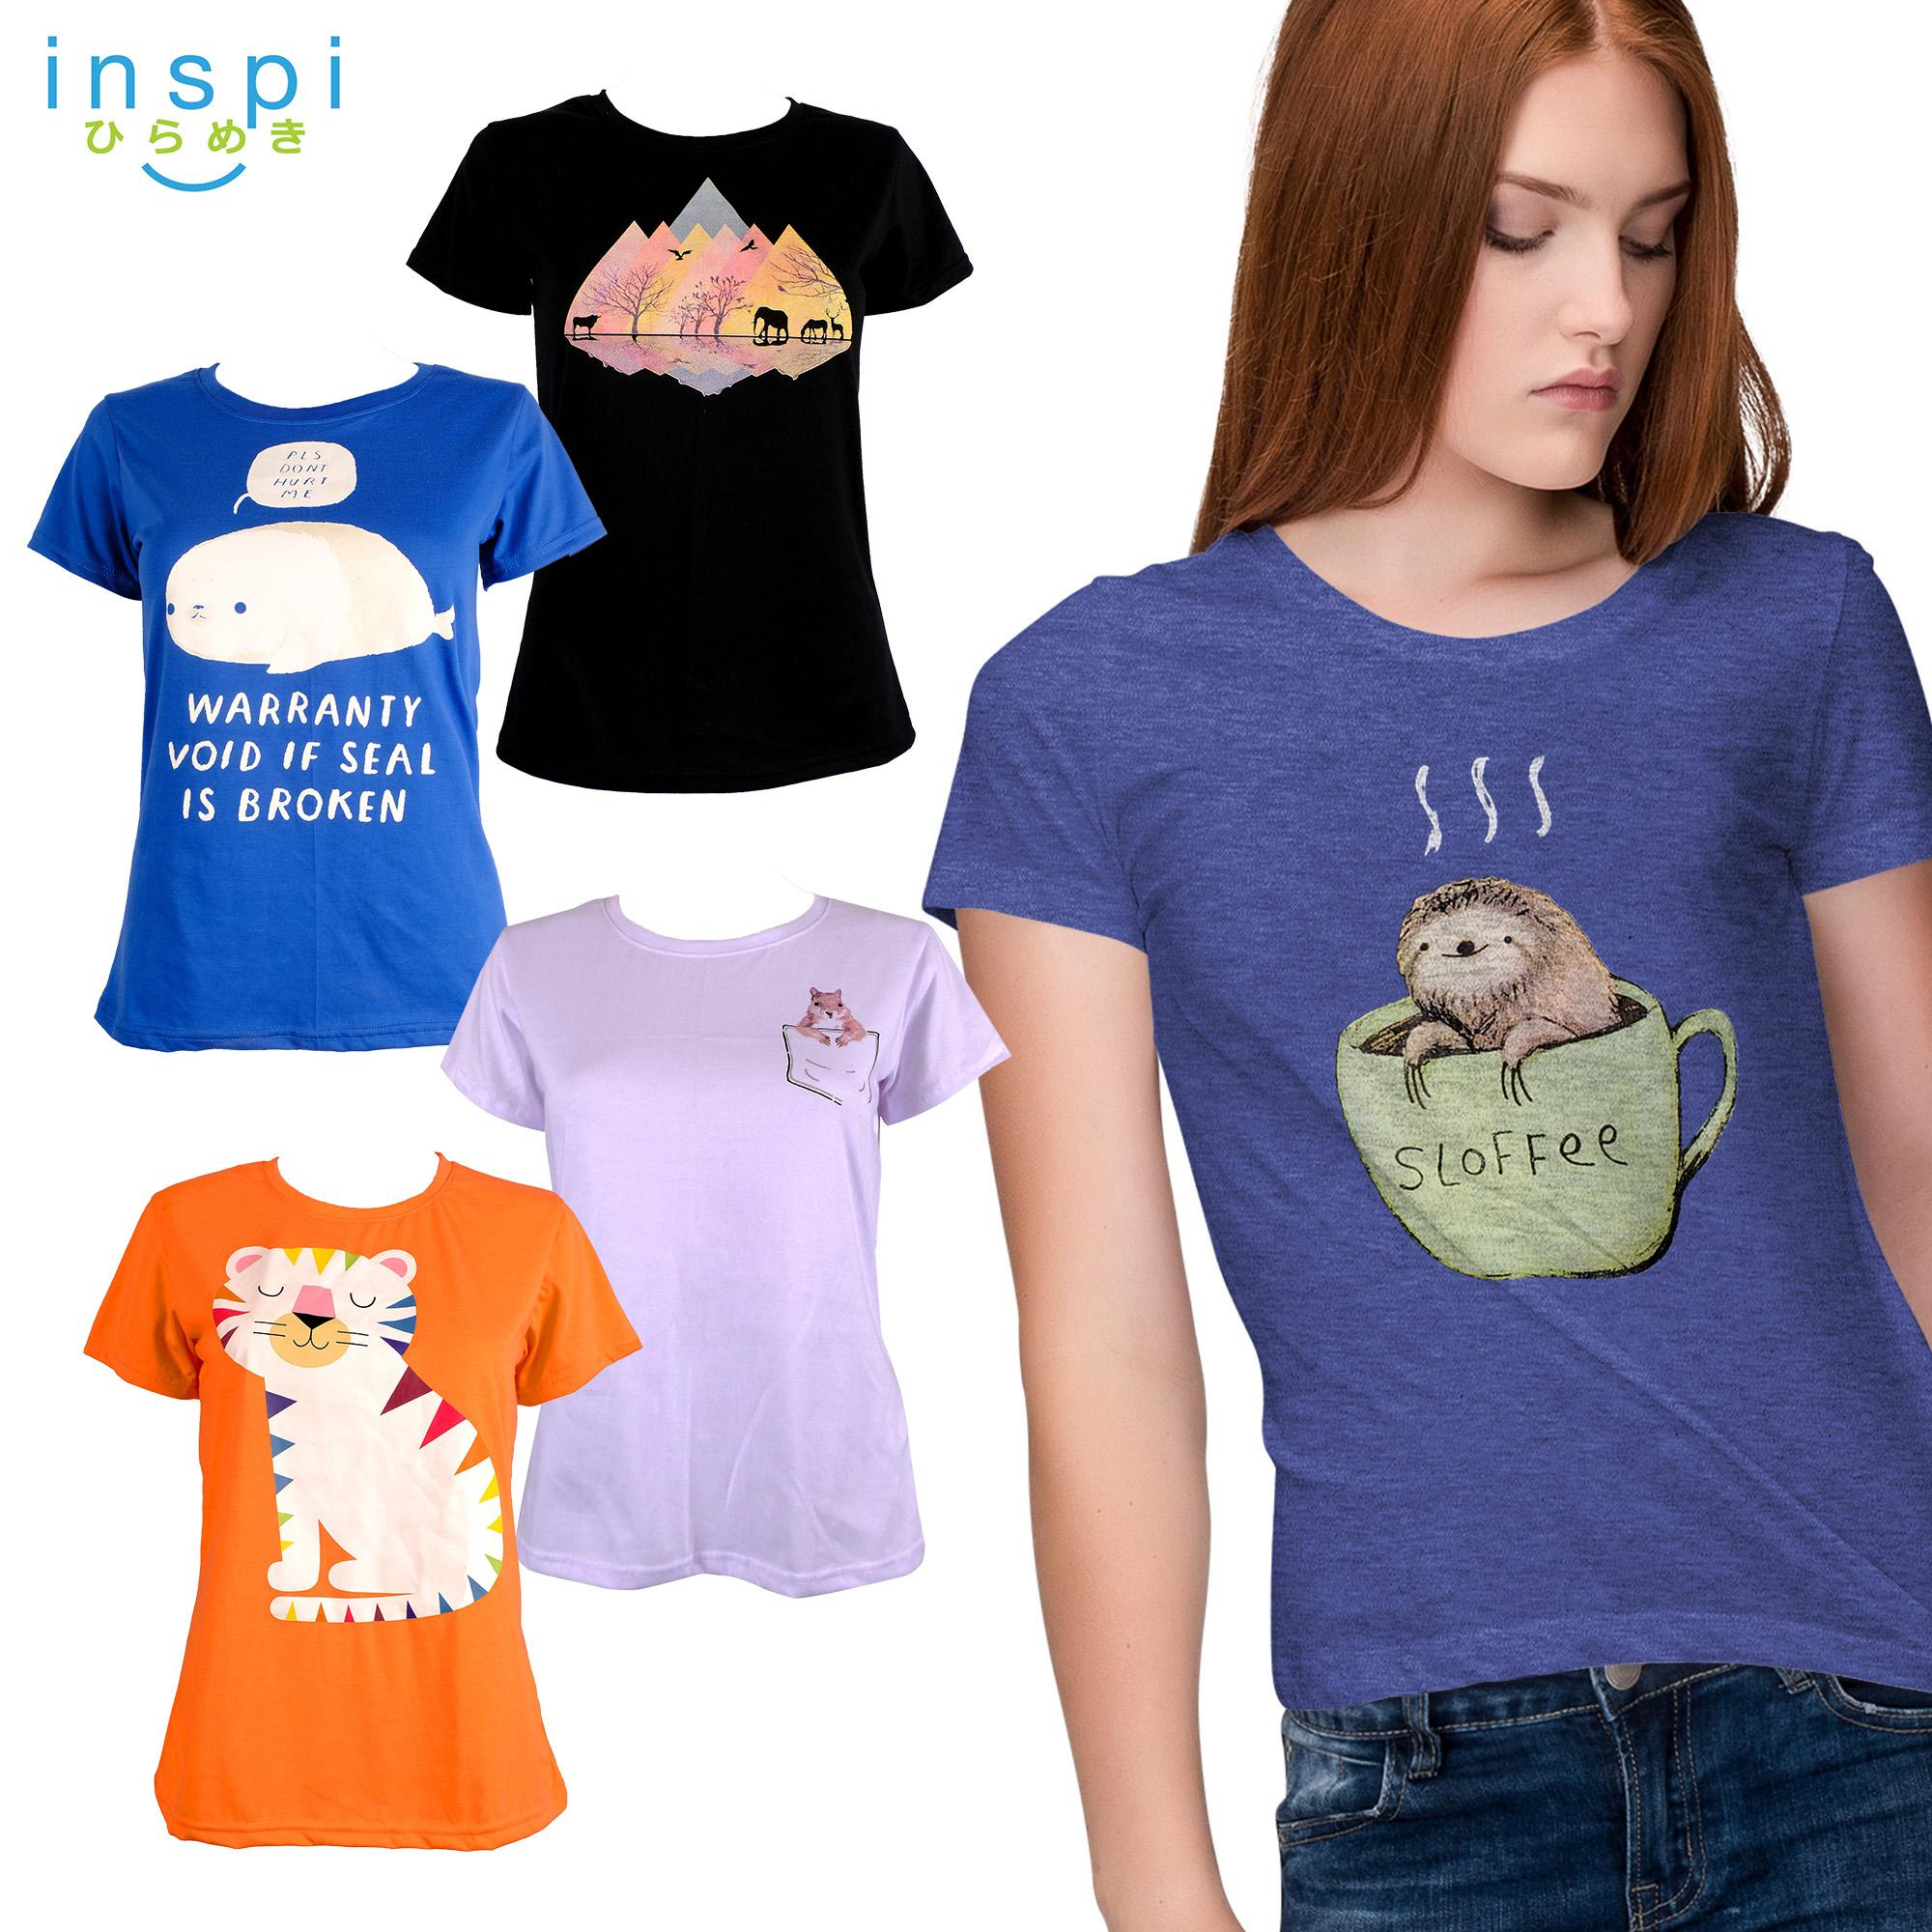 7be6a92dac INSPI Tees Ladies Pet Collection tshirt printed graphic tee Ladies t shirt  shirts women tshirts for